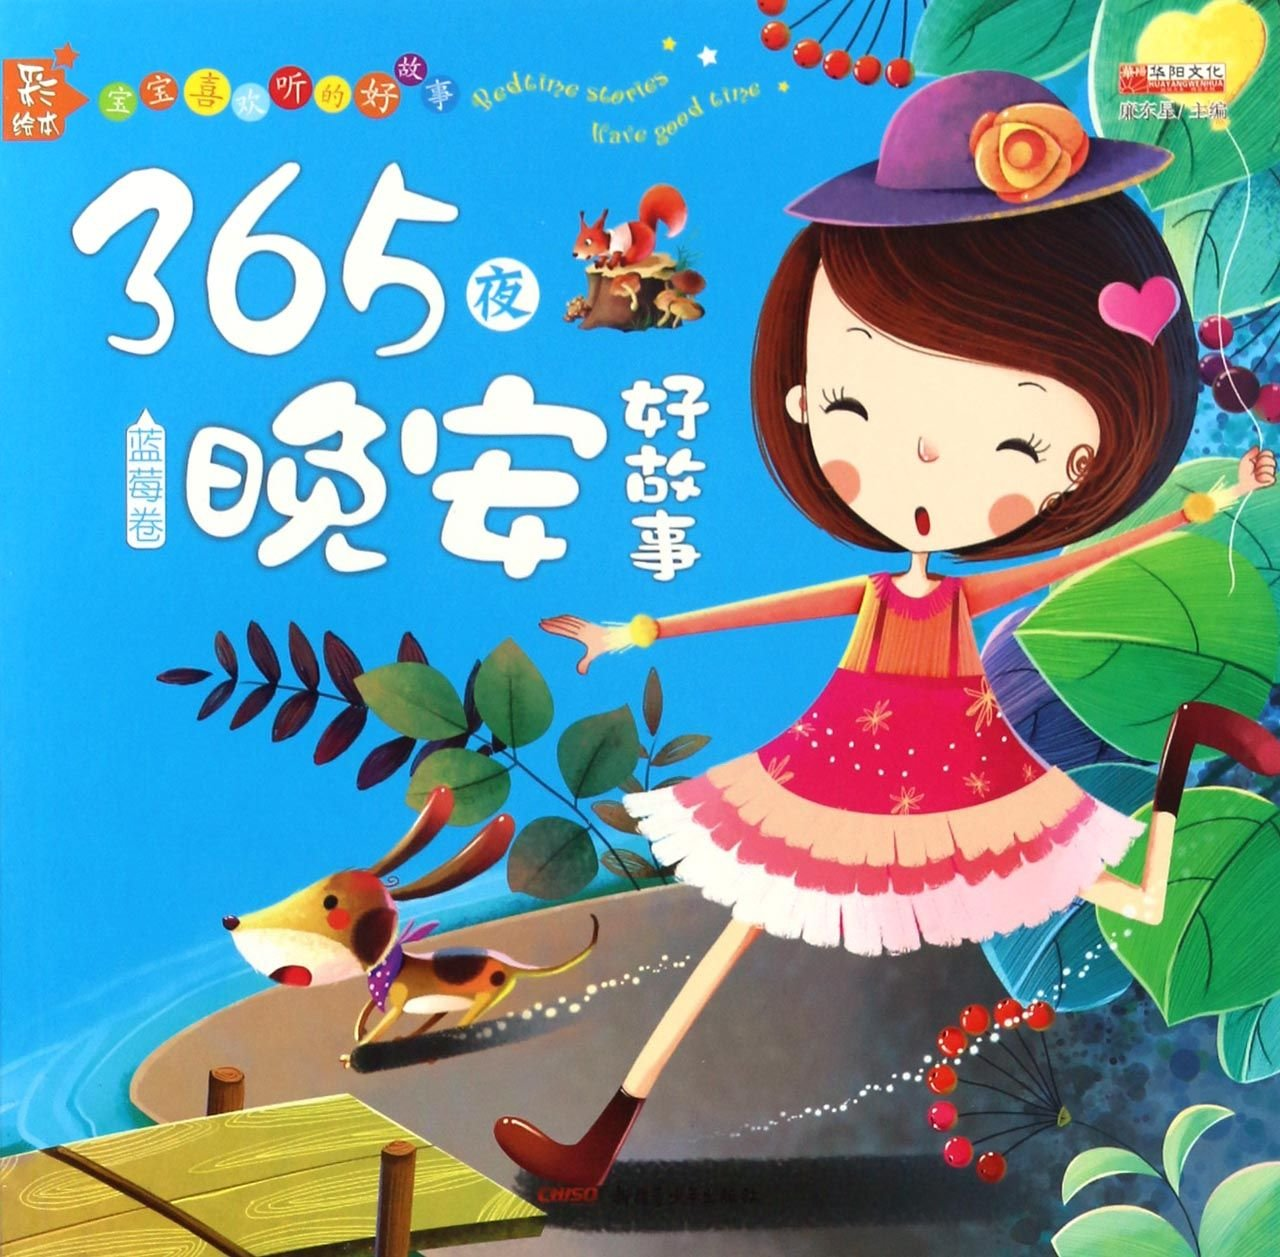 365 Bedtime Stories - Blueberry Volume (Chinese Edition) PDF